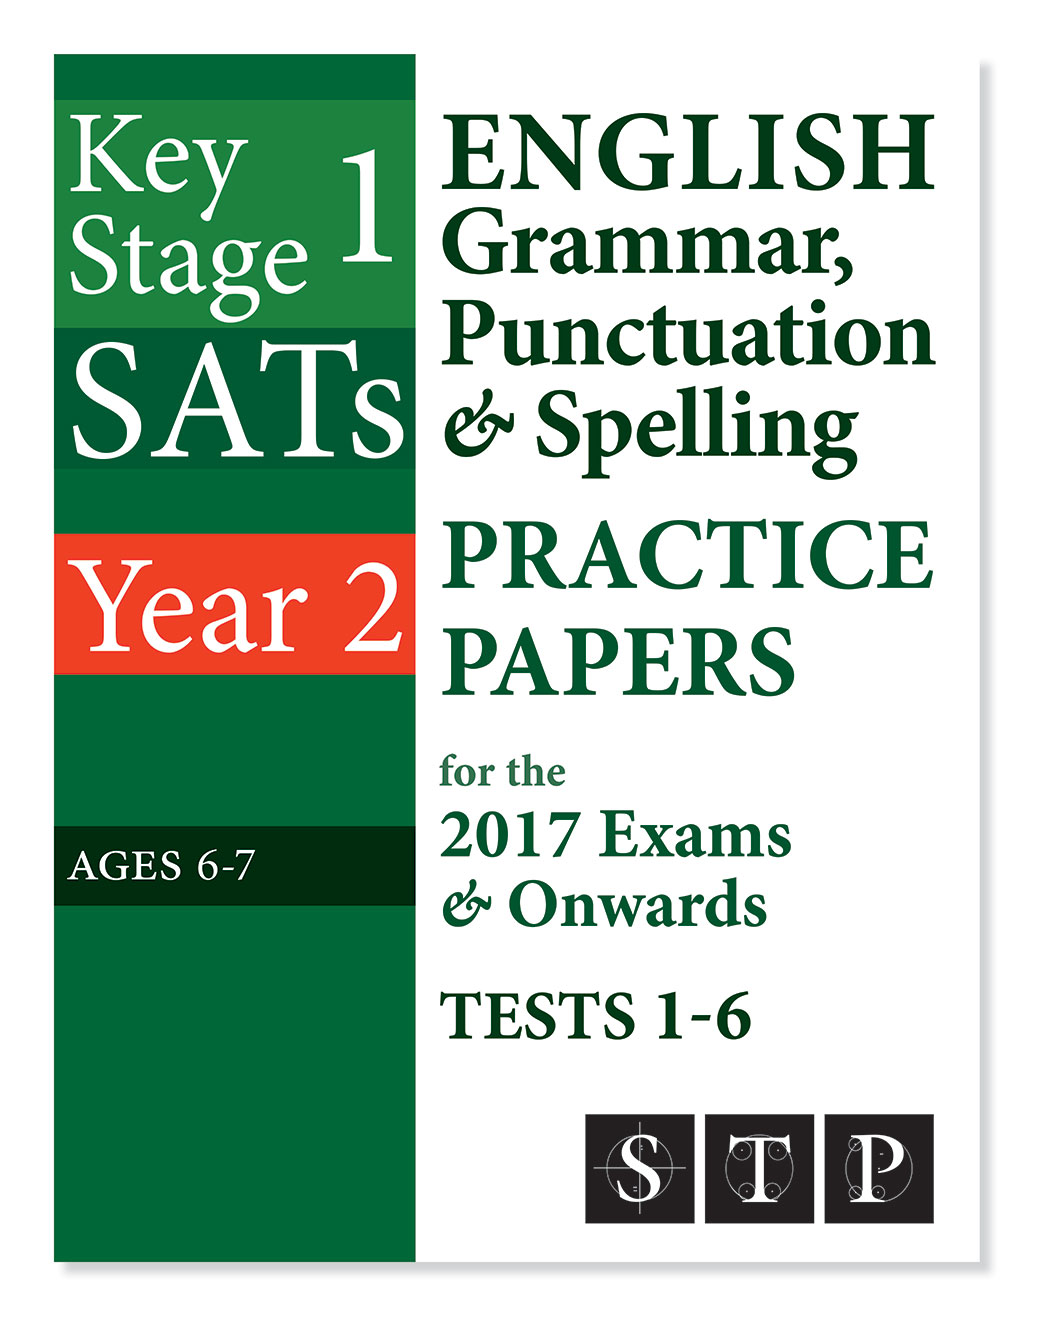 STP Books KS1 SATs English Grammar, Punctuation & Spelling Practice Papers for the 2017 Exams & Onwards Tests 1-6 (Year 2: Ages 6-7)